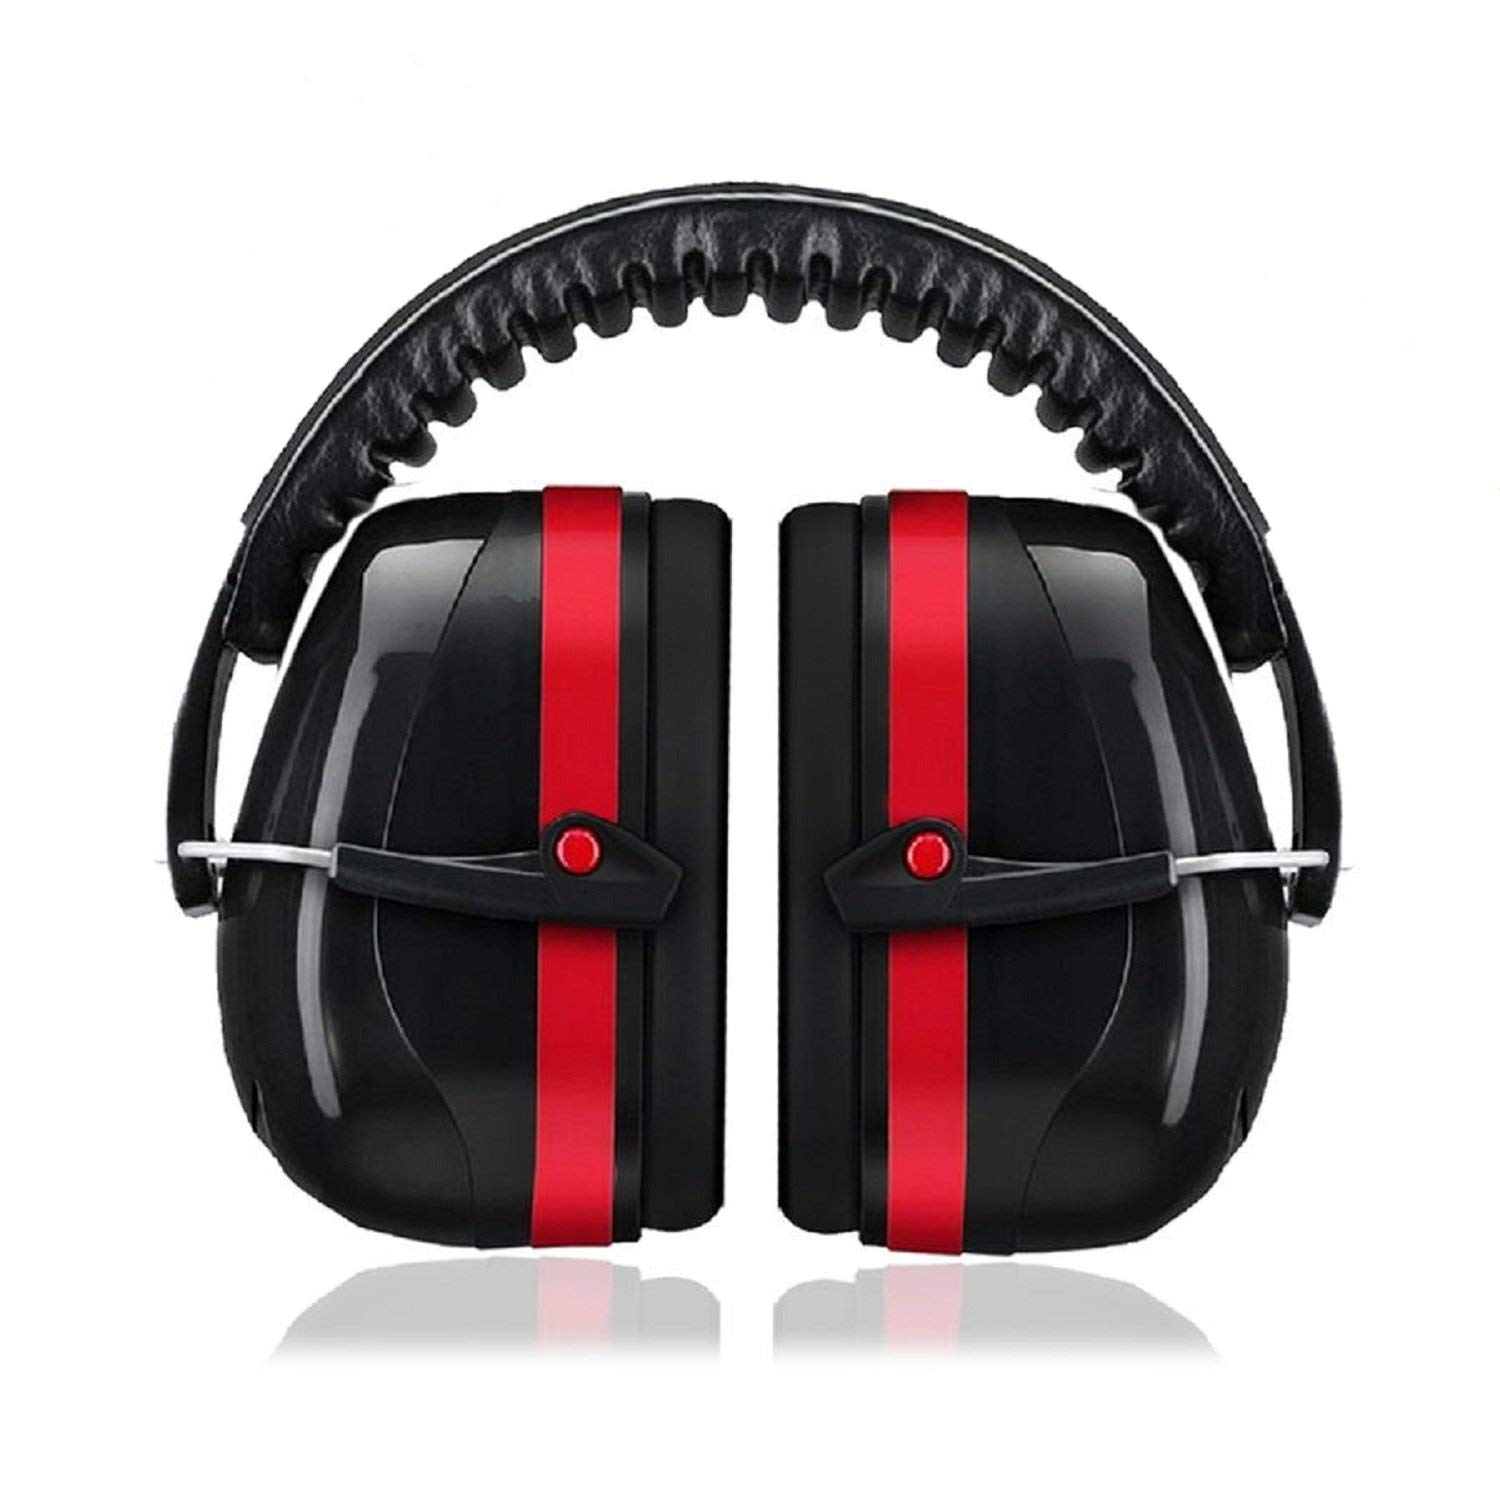 Noise Reduction Safety Ear Muffs,35dB Highest NRR Safety Ear Muffs Shooters Hearing Protection Ear Muffs,Adjustable Shooting Ear Muffs,Professional Shooting Hunting Ear Muffs (Red Black)